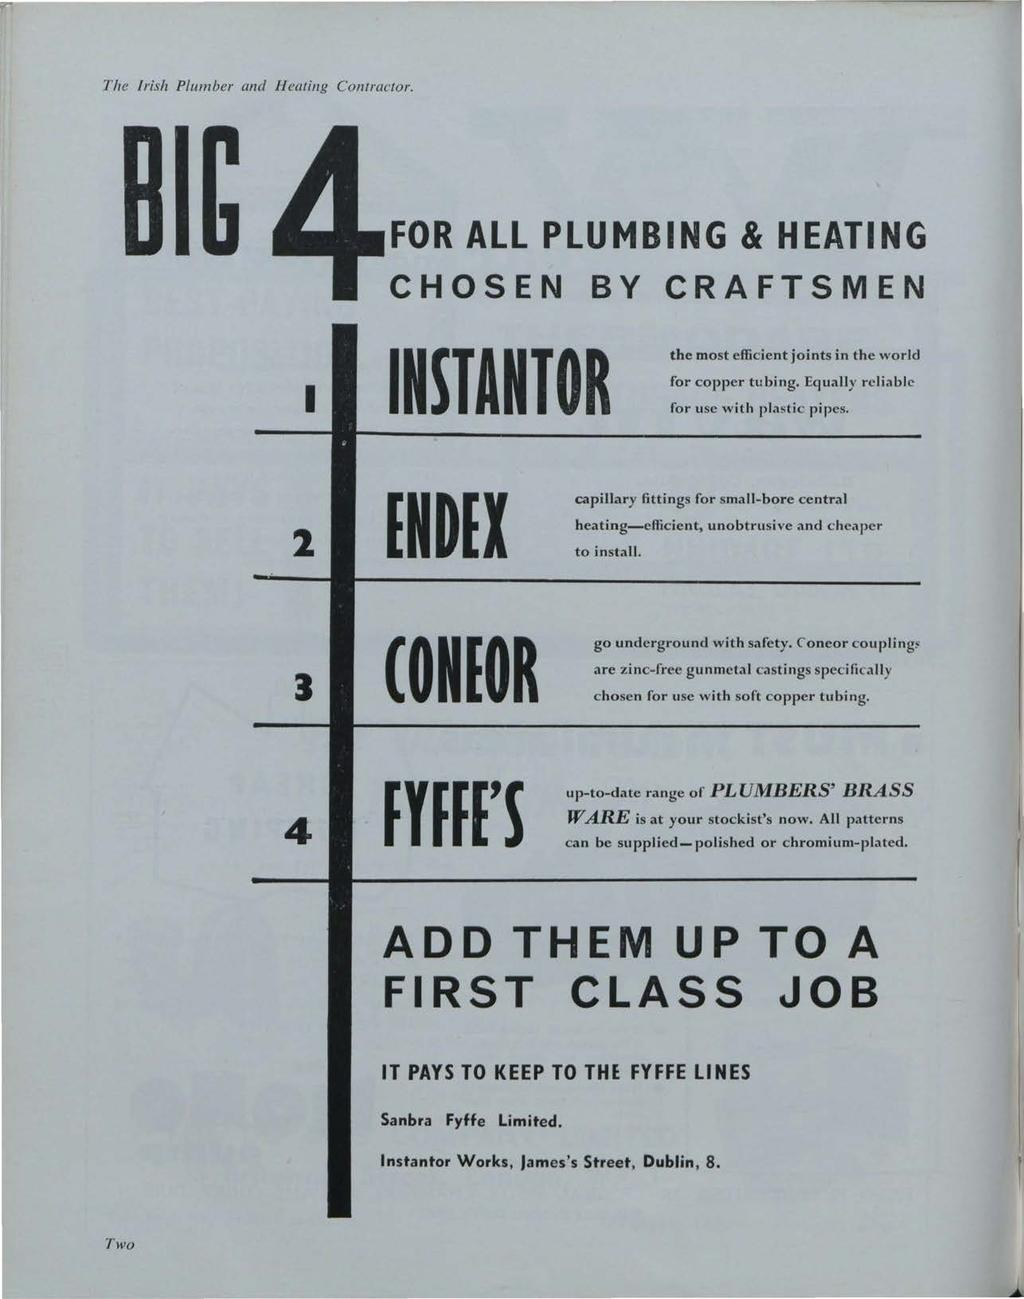 Building Services News, Vol. 2, Iss. 12 [1963], Art. 1 The Irish Plumber and H eating Contractor.